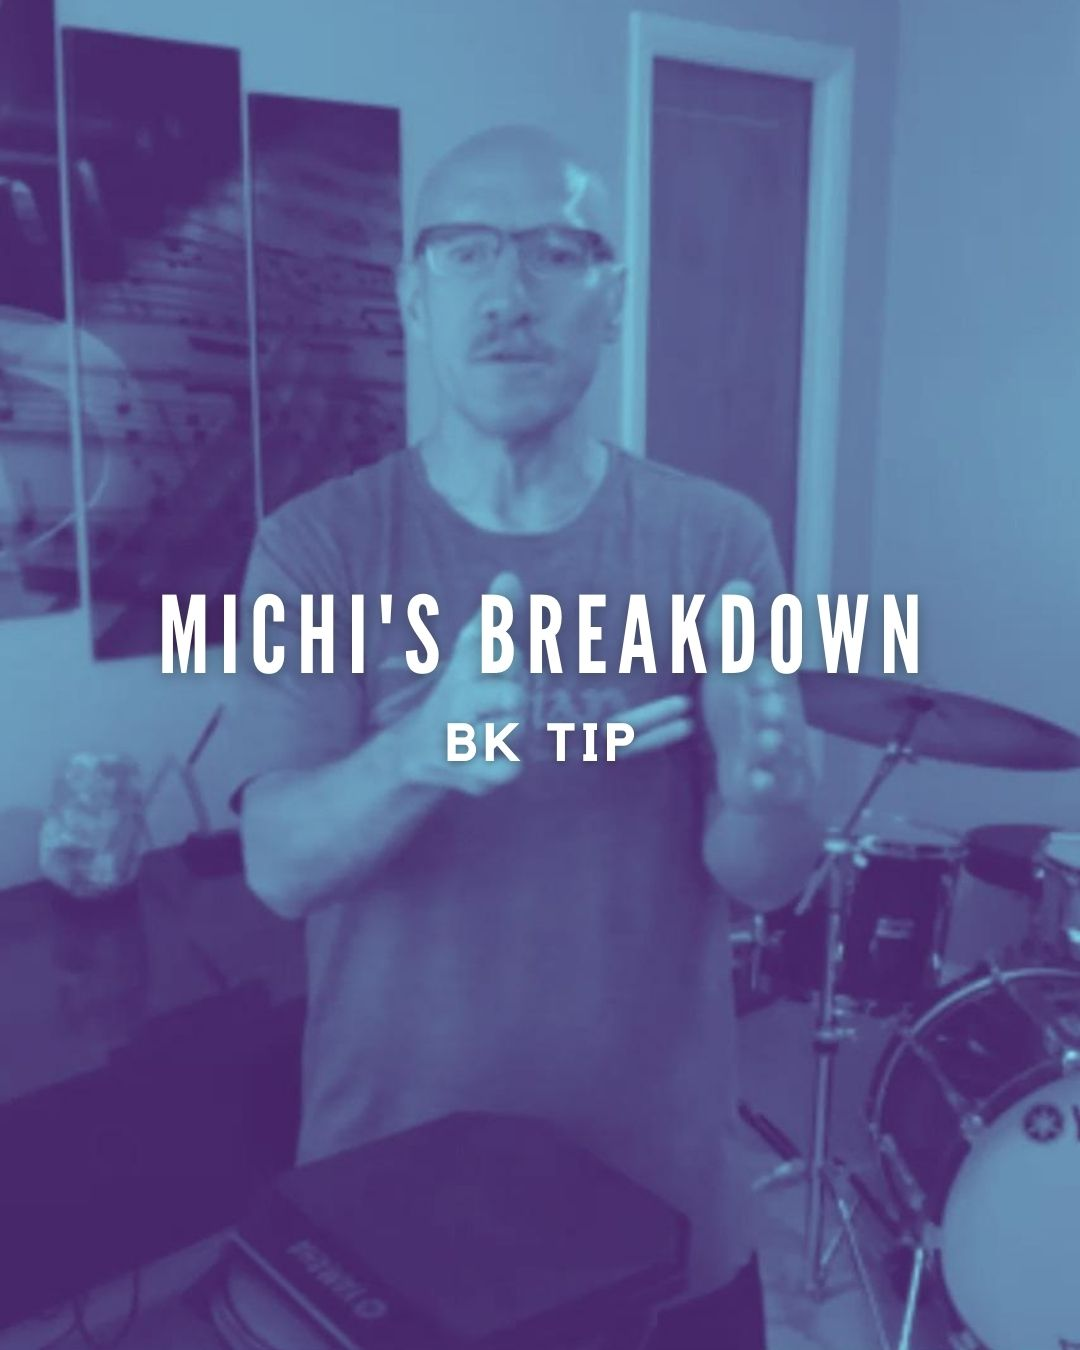 Michi's Breakdown